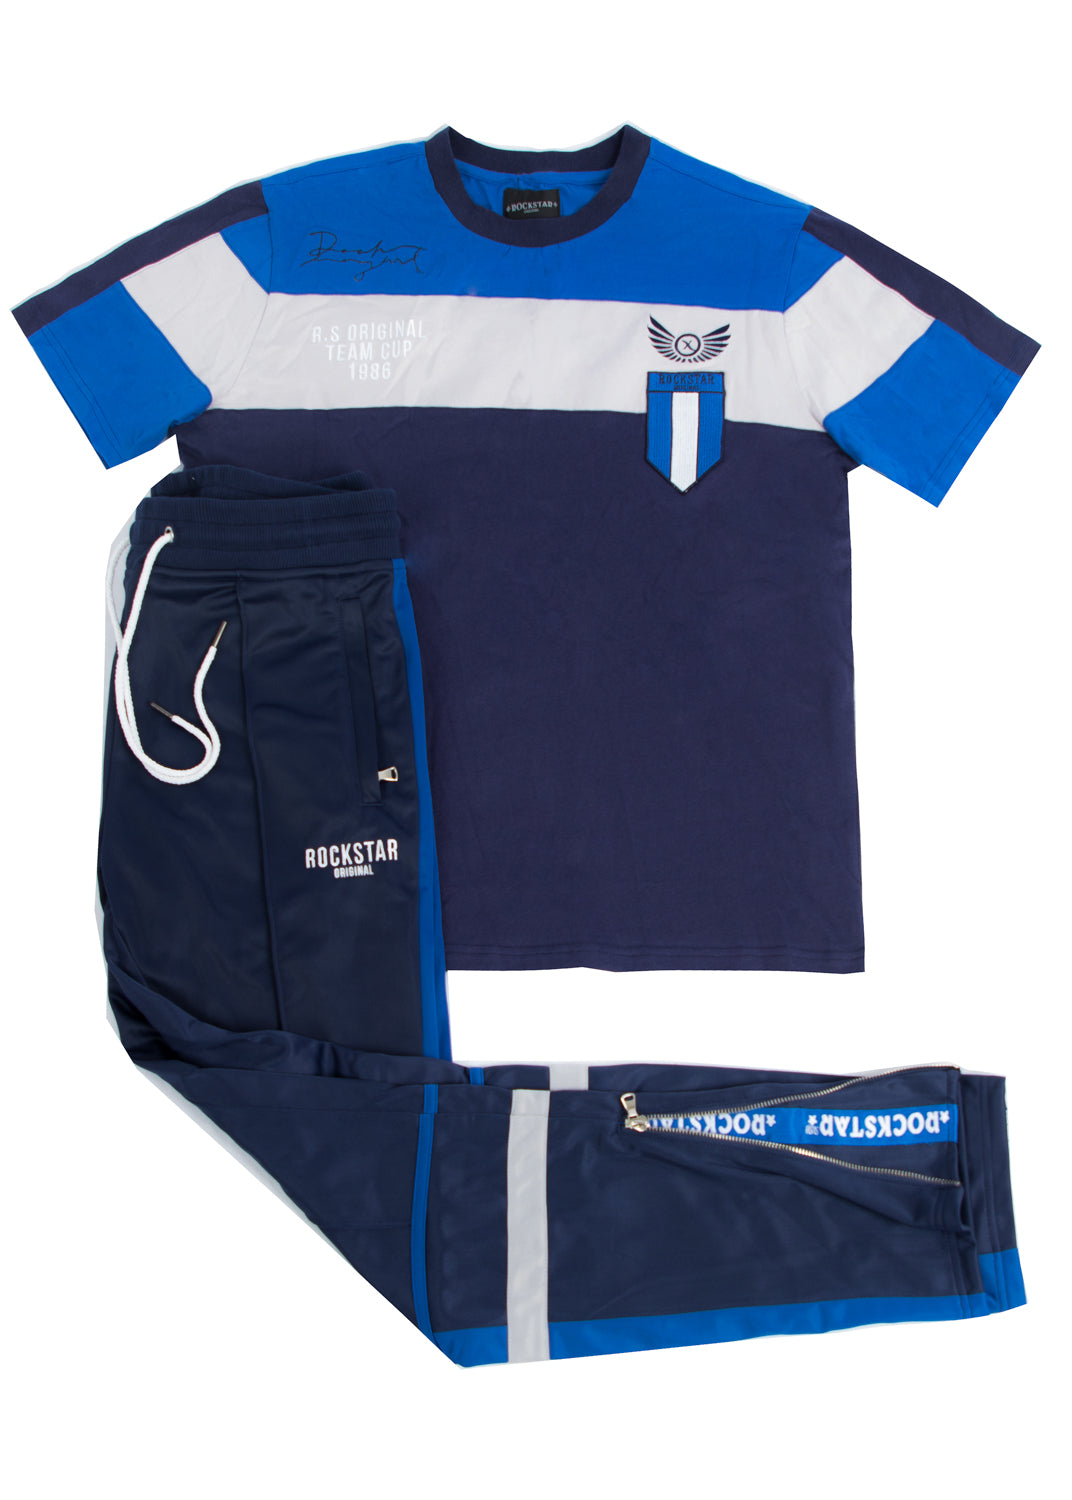 Yawnee (Navy) Set